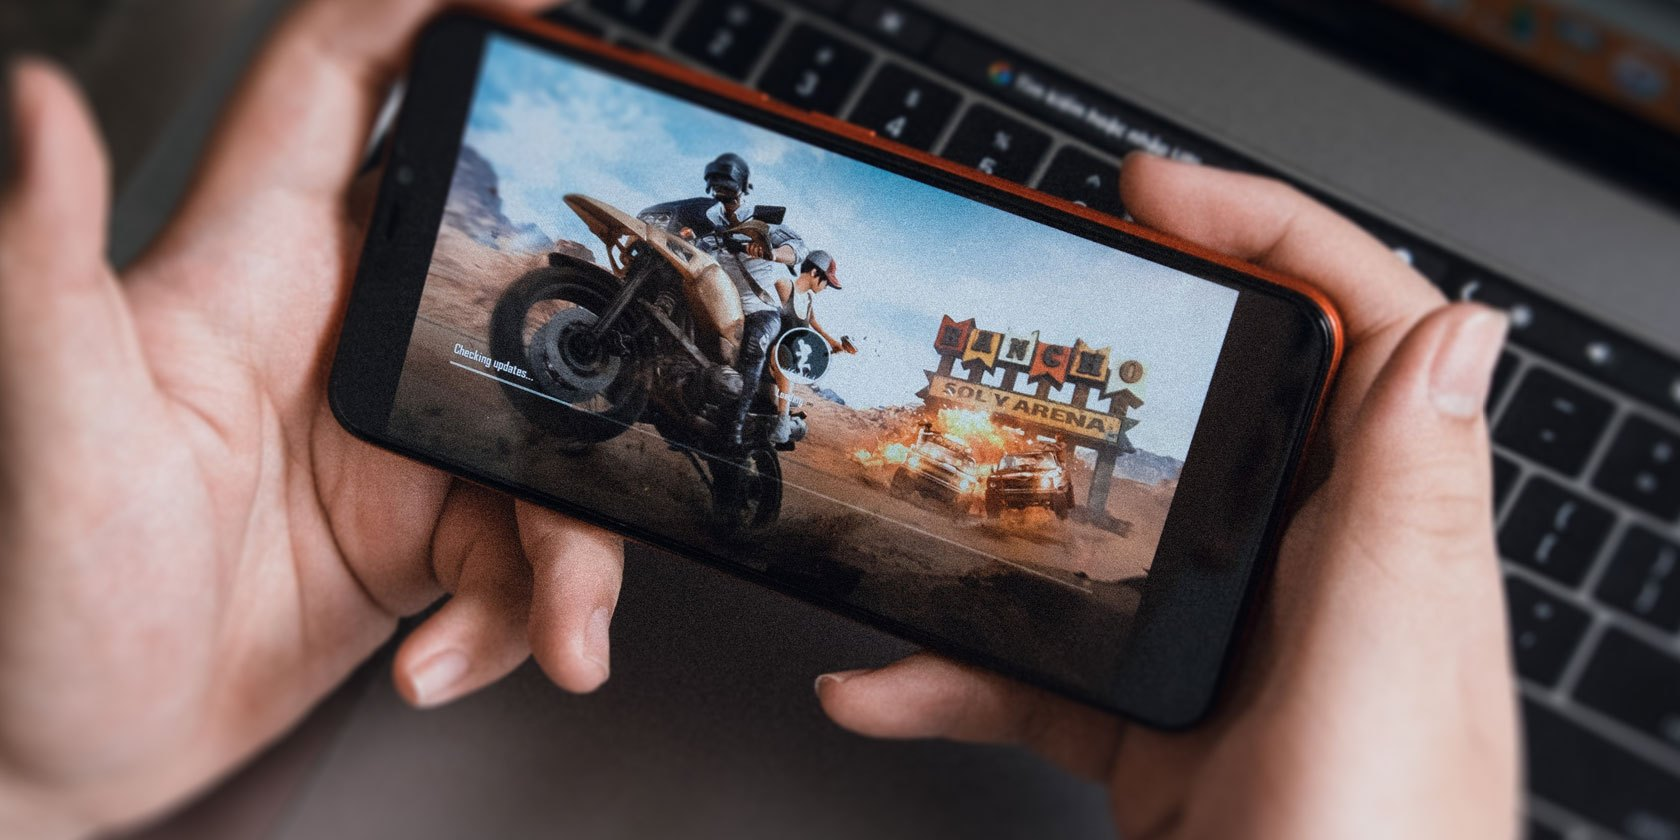 7 Ways to Find New Mobile Games Worth Playing